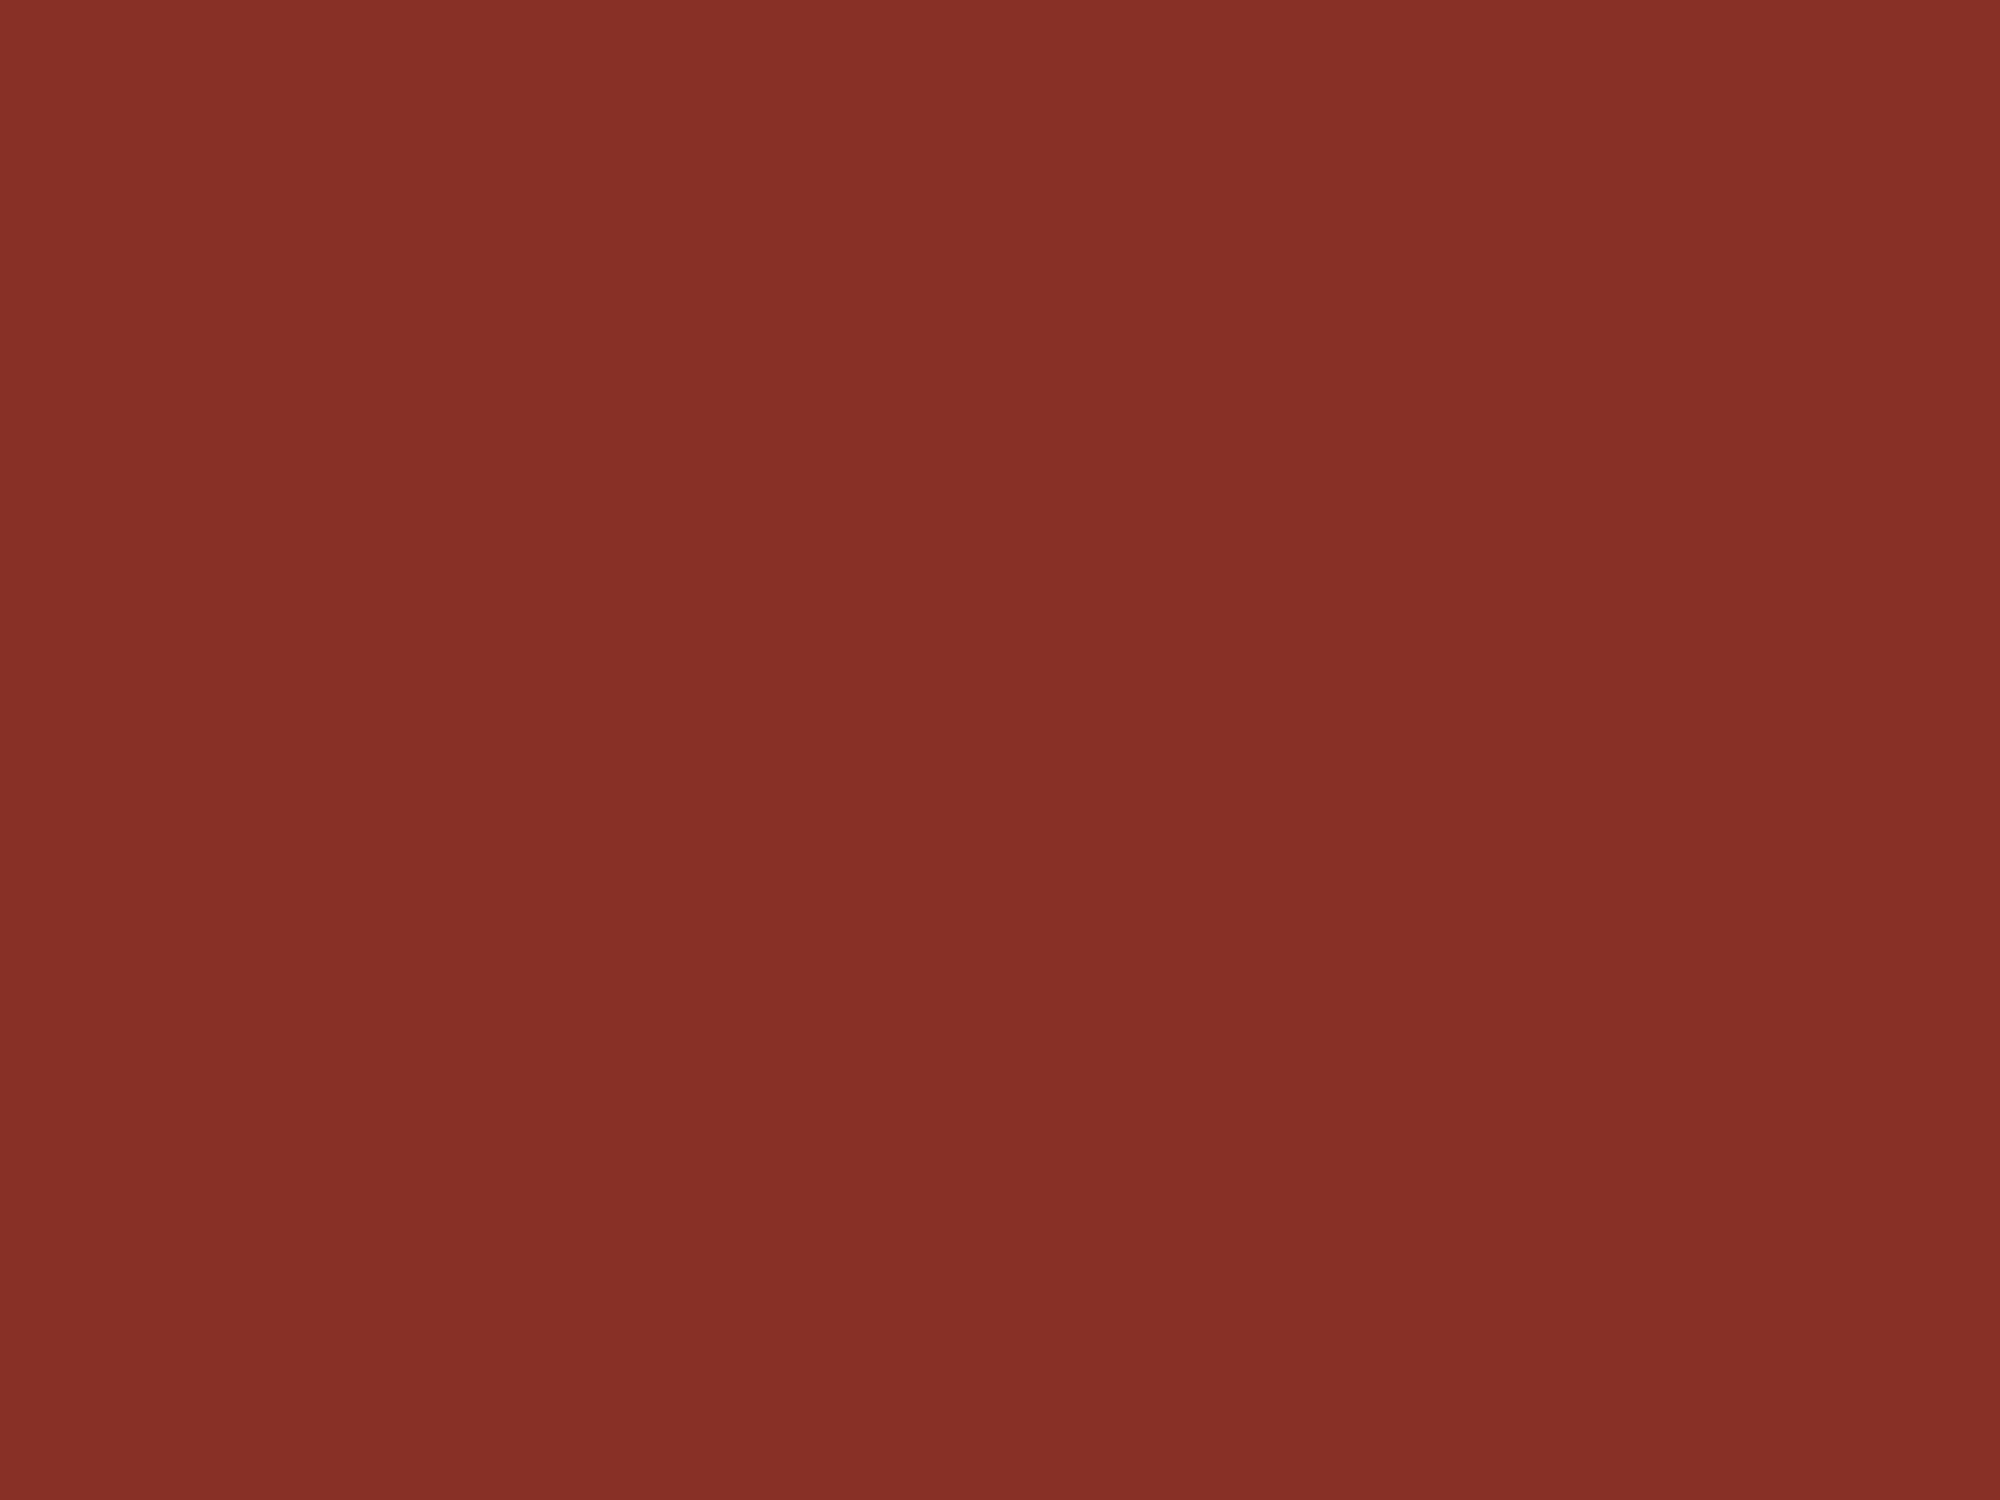 - 45. NCS S 4050- Y80R* RUSTY RED